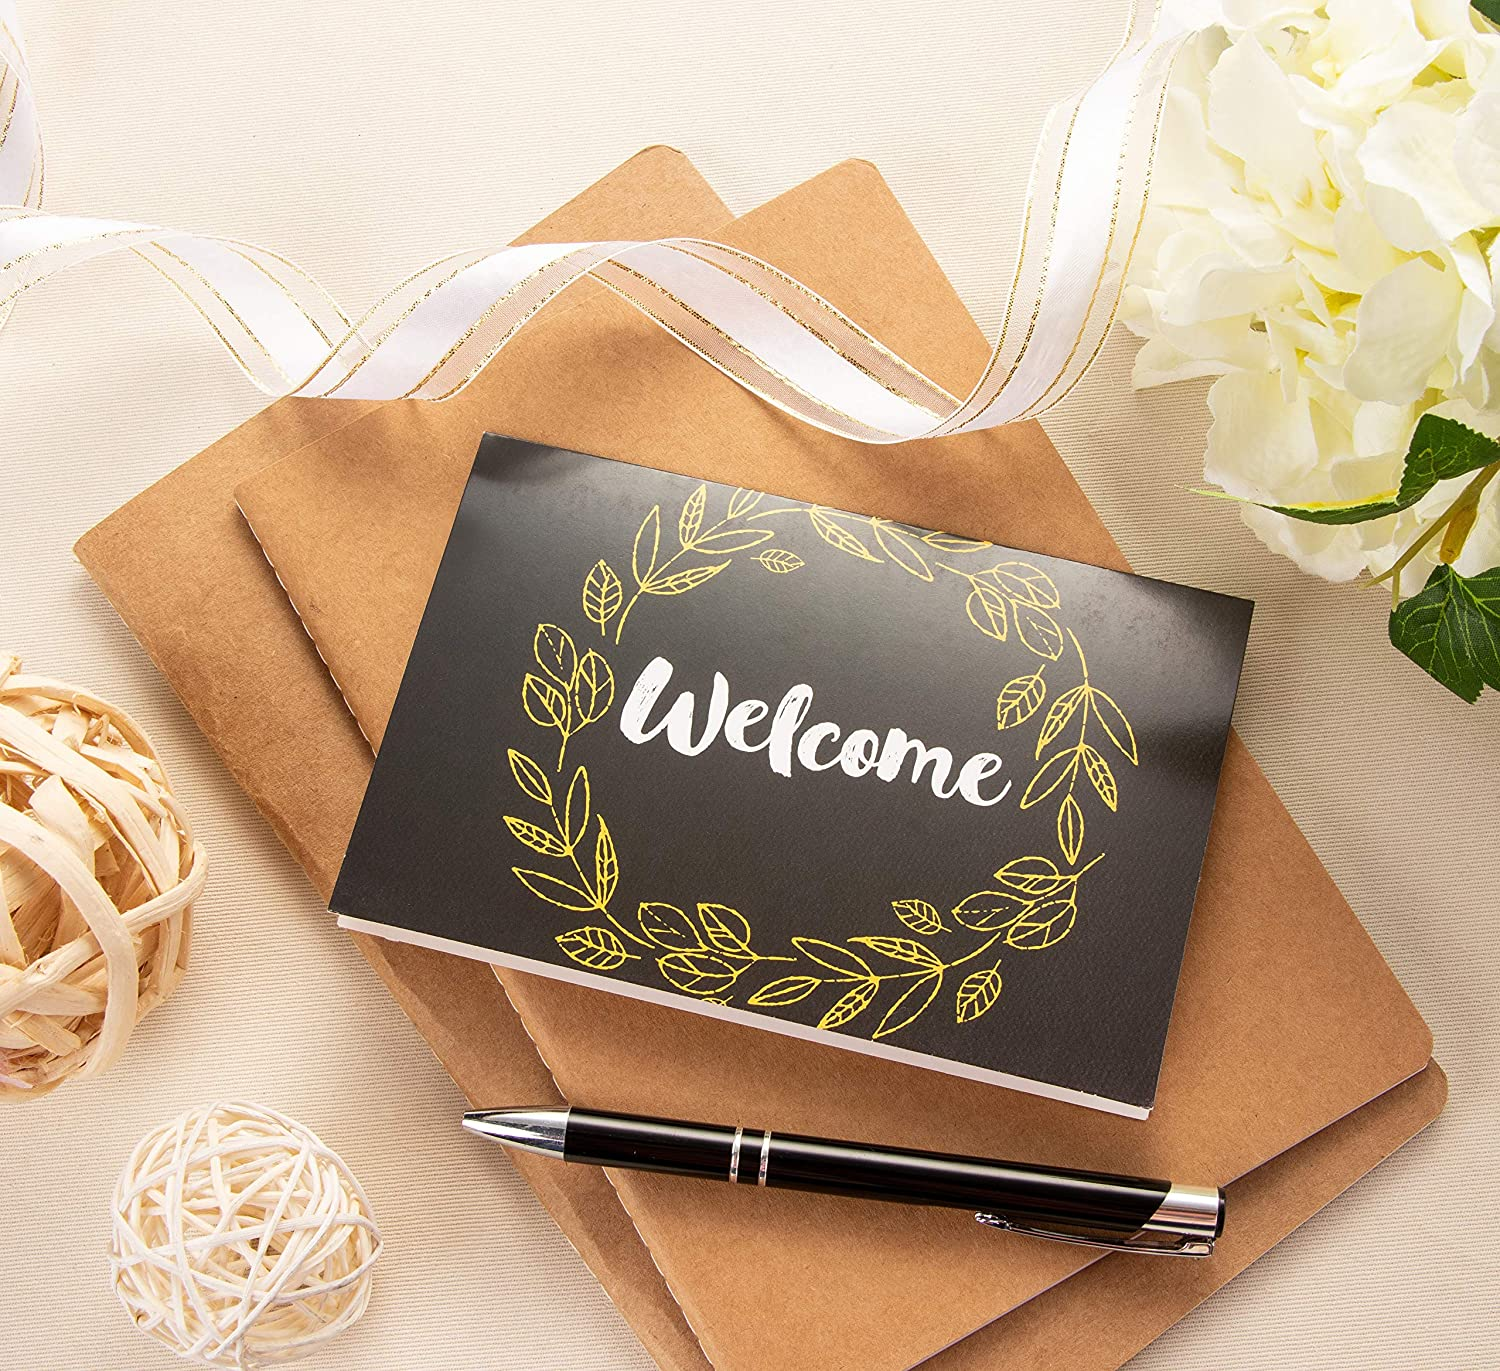 All Occasion Cards Notecards with Envelopes Included 6 Floral Designs Blank Note Cards 4 x 6 Inches 48 Pack Welcome Greeting Cards Bulk Box Set